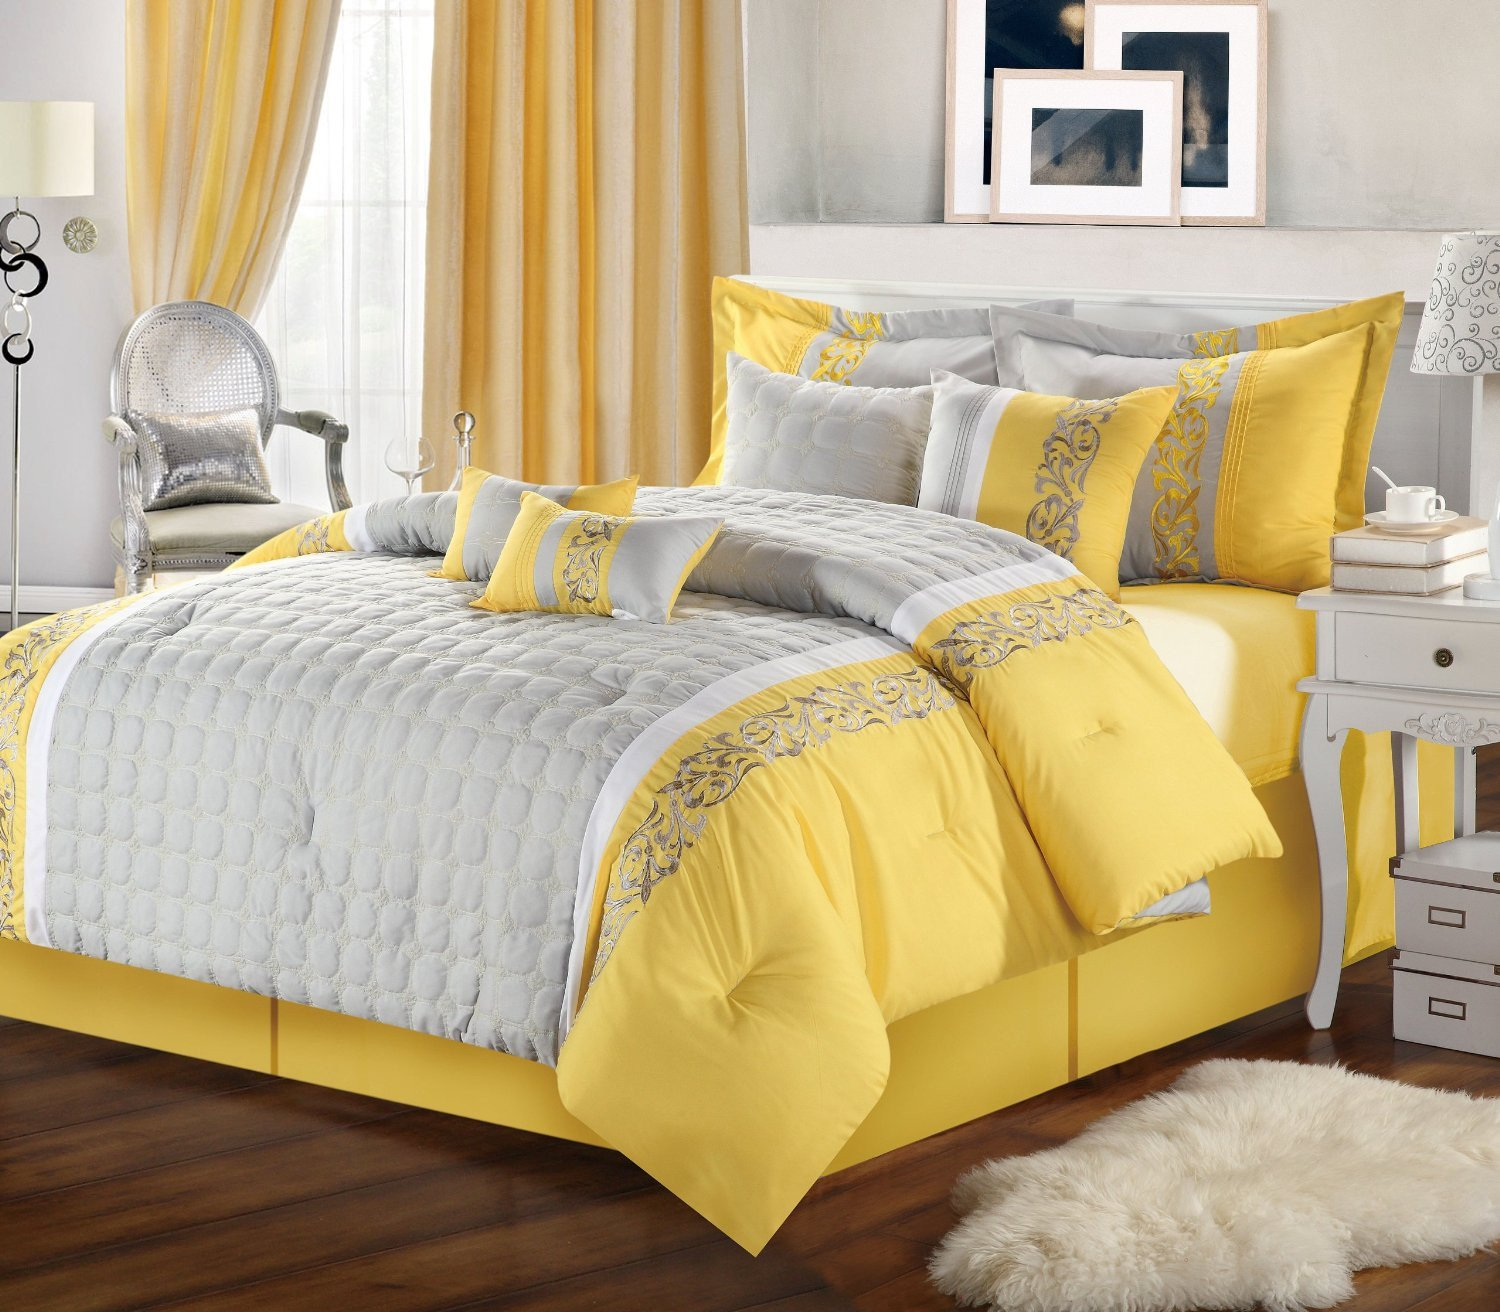 Grey and Yellow Bedroom Decor Luxury Gray and Yellow Bedroom with Calm Nuance Traba Homes